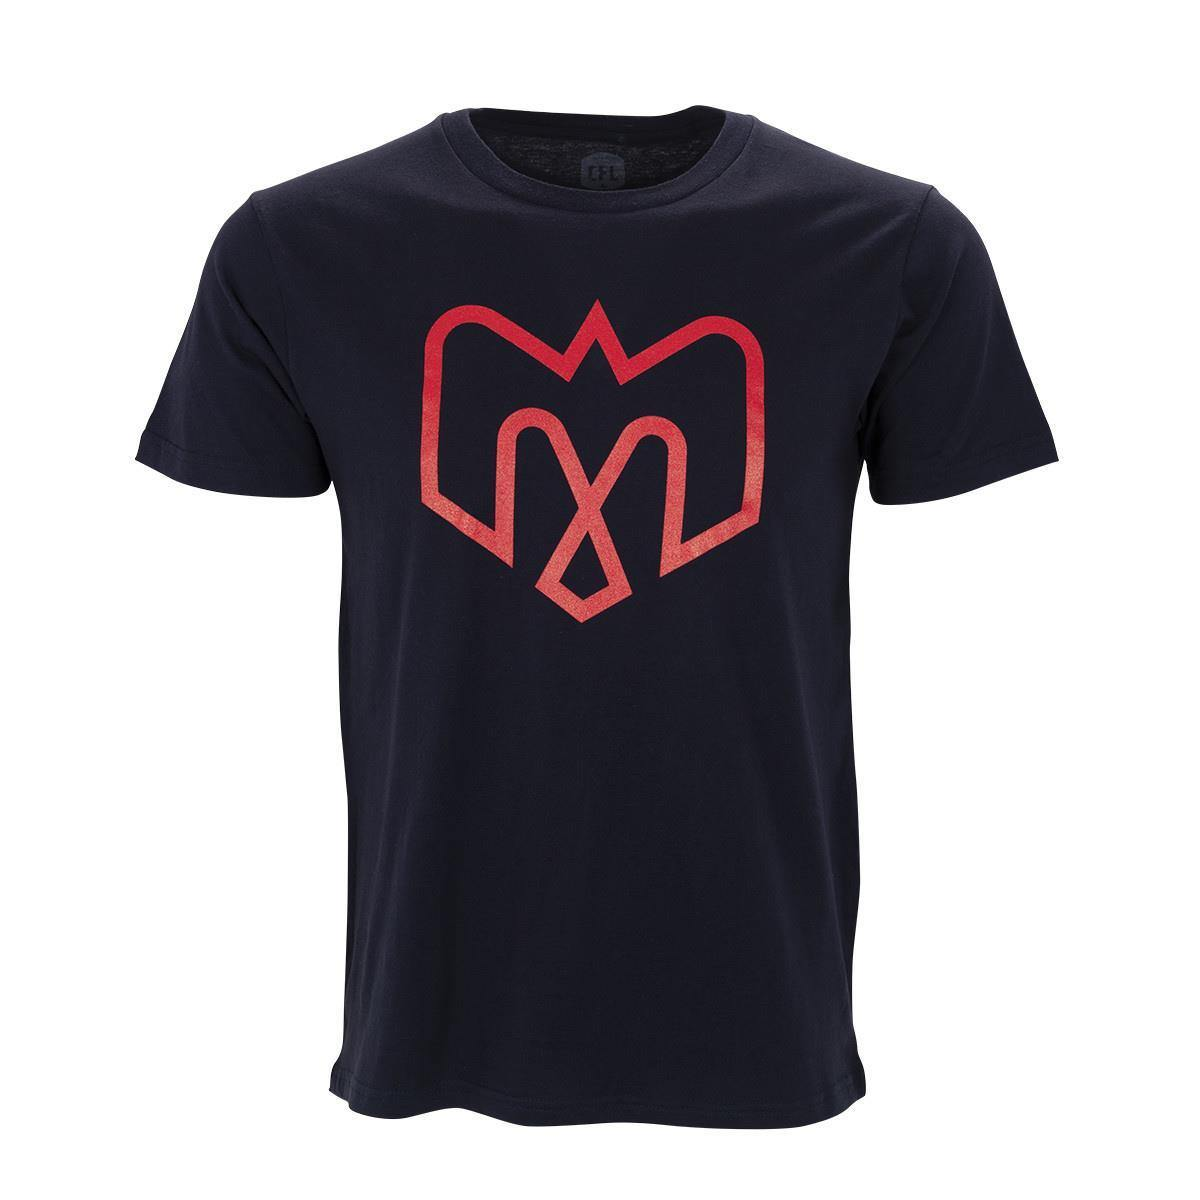 New Era Monalo Tee Shirt Alouettes.